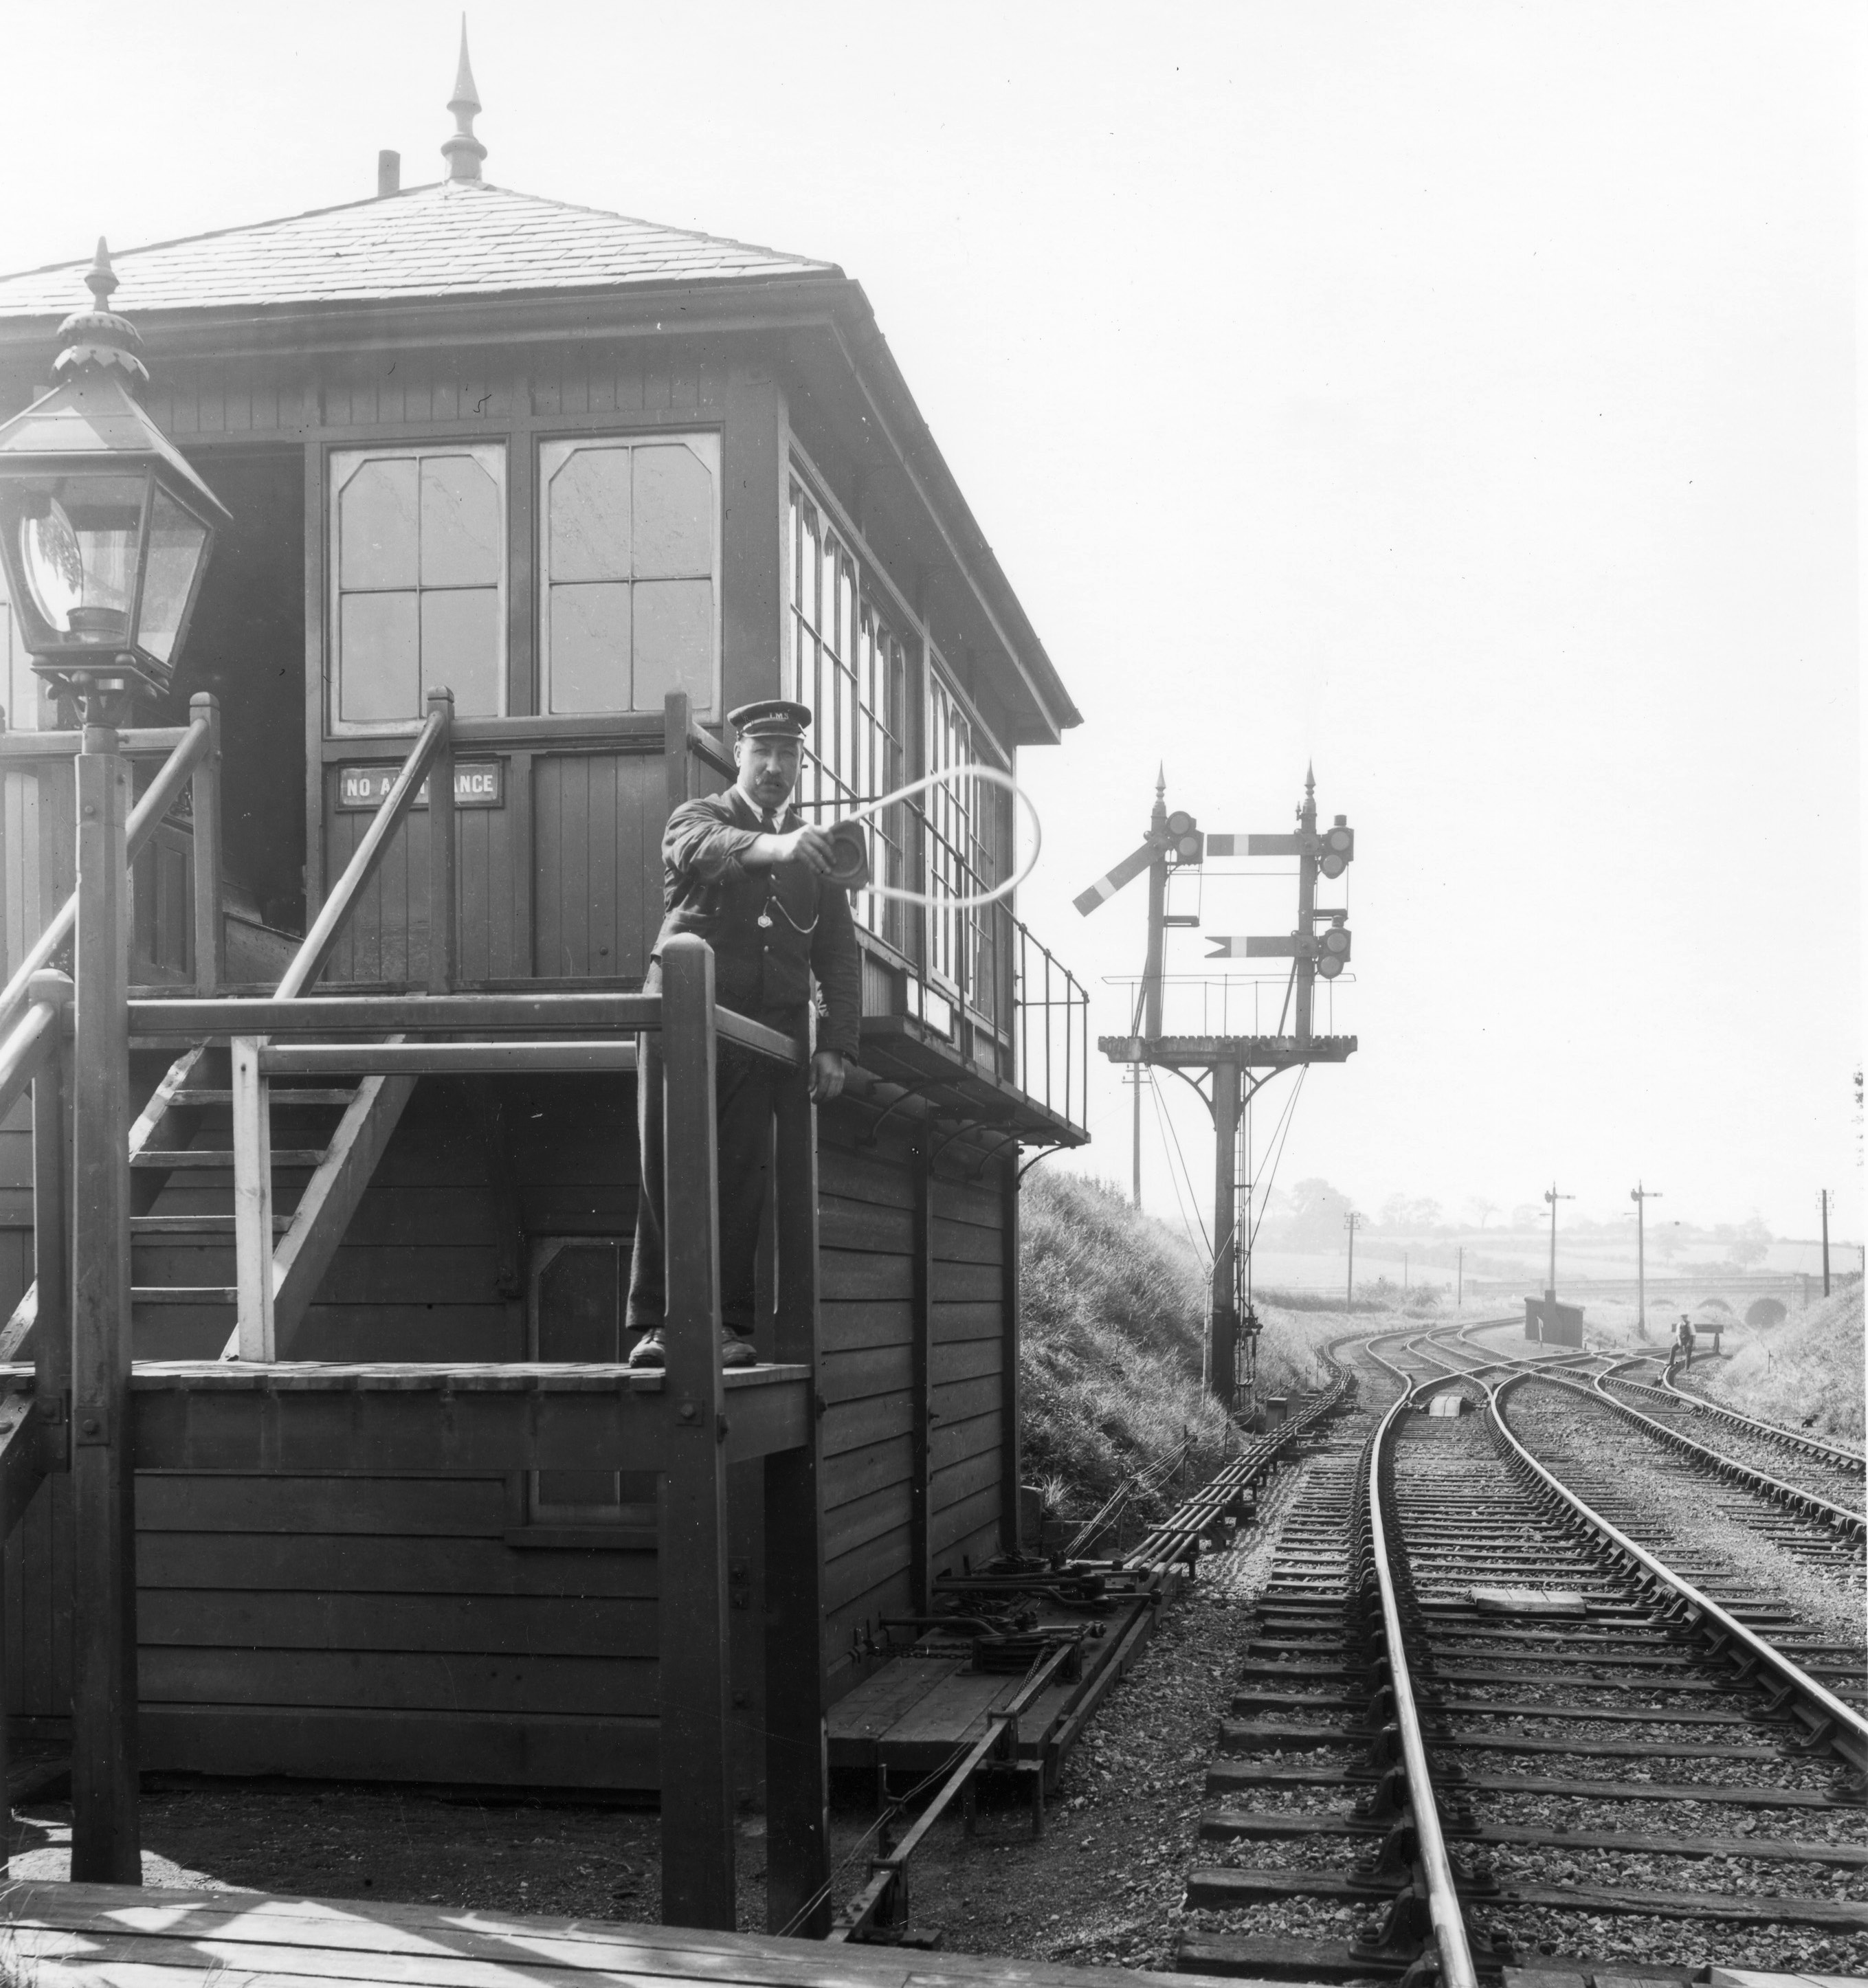 A LMS signalman posing on the steps of his signal box holdong out a single line toekn for a (non-existent) train to collect.